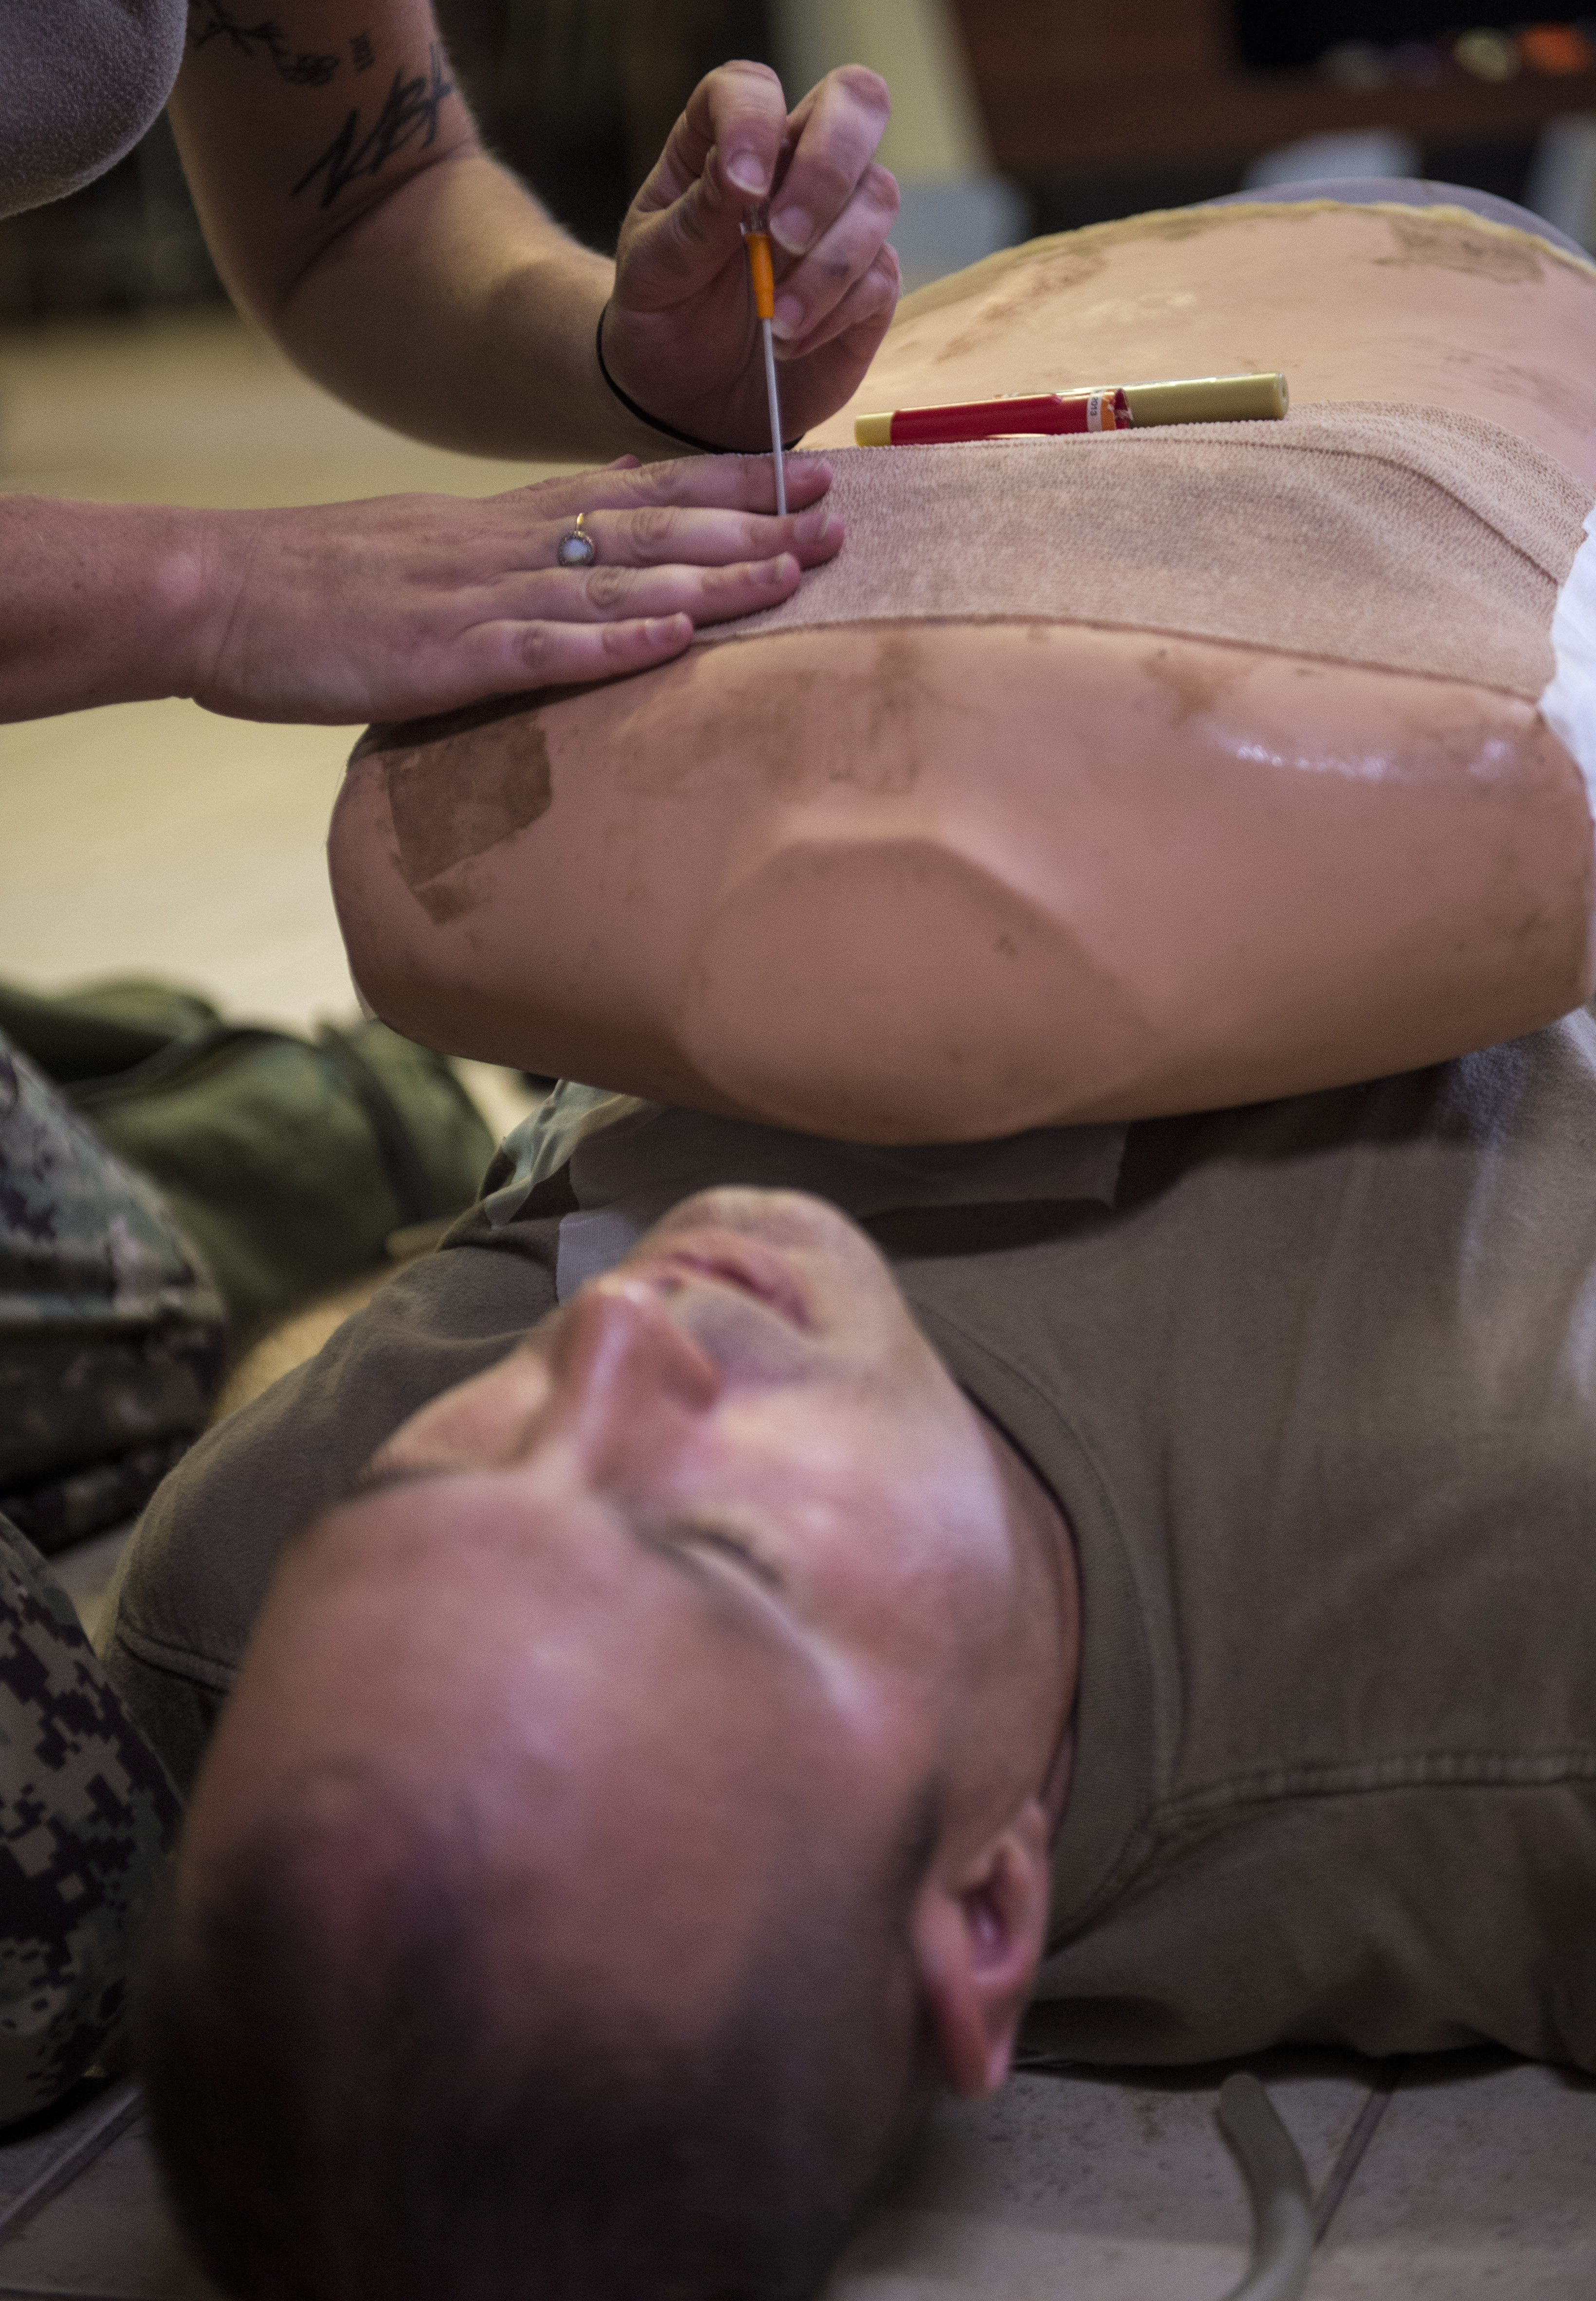 U.S. Navy Utilitiesman 3rd Class Amanda Stone, assigned to Naval Mobile Construction Battalion 133, attached to the Combined Joint Task Force – Horn of Africa, performs a needle chest decompression (NCD) on a simulated casualty during the final assessment of a U.S. Army Combat Lifesaver Course held at Camp Lemonnier, Djibouti, Dec. 1, 2017. An NCD is used when air enters the chest cavity but can't escape, creating pressure on a lung. The five-day course focused on teaching students how to administer lifesaving tactical medical care to wounded service members on the battlefield. (U.S. Air Force photo by Staff Sgt. Timothy Moore)